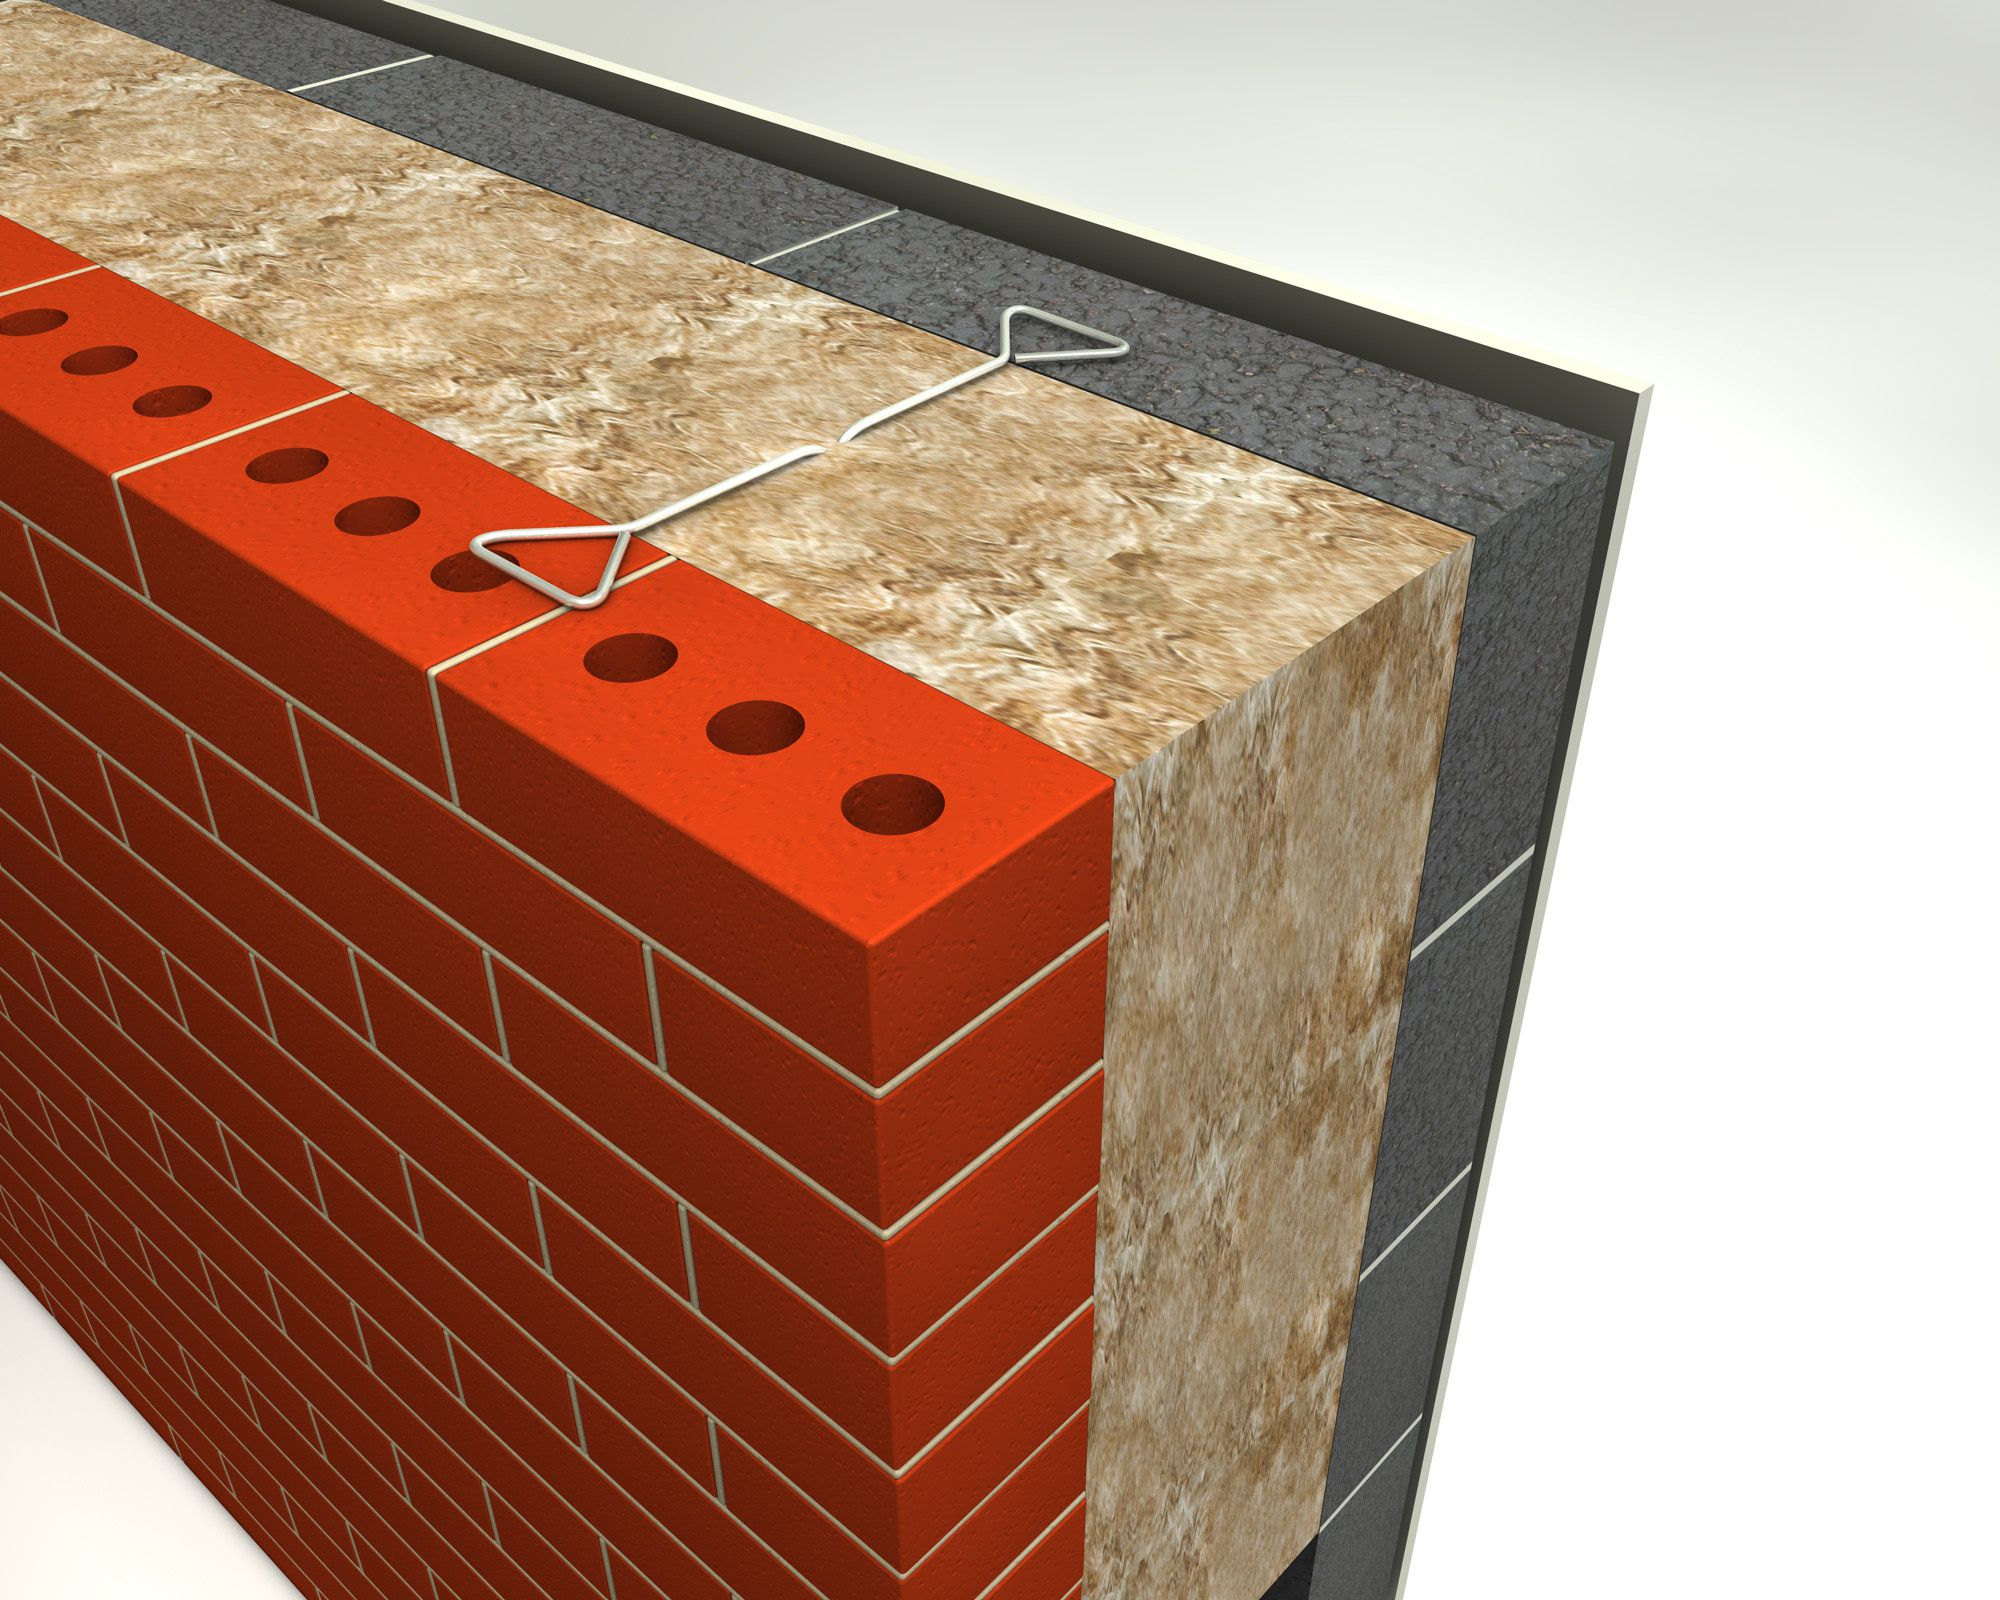 High Quality This Example Shows 2 Layer Aircrete Insulation   We Would Use This To  Provide A High